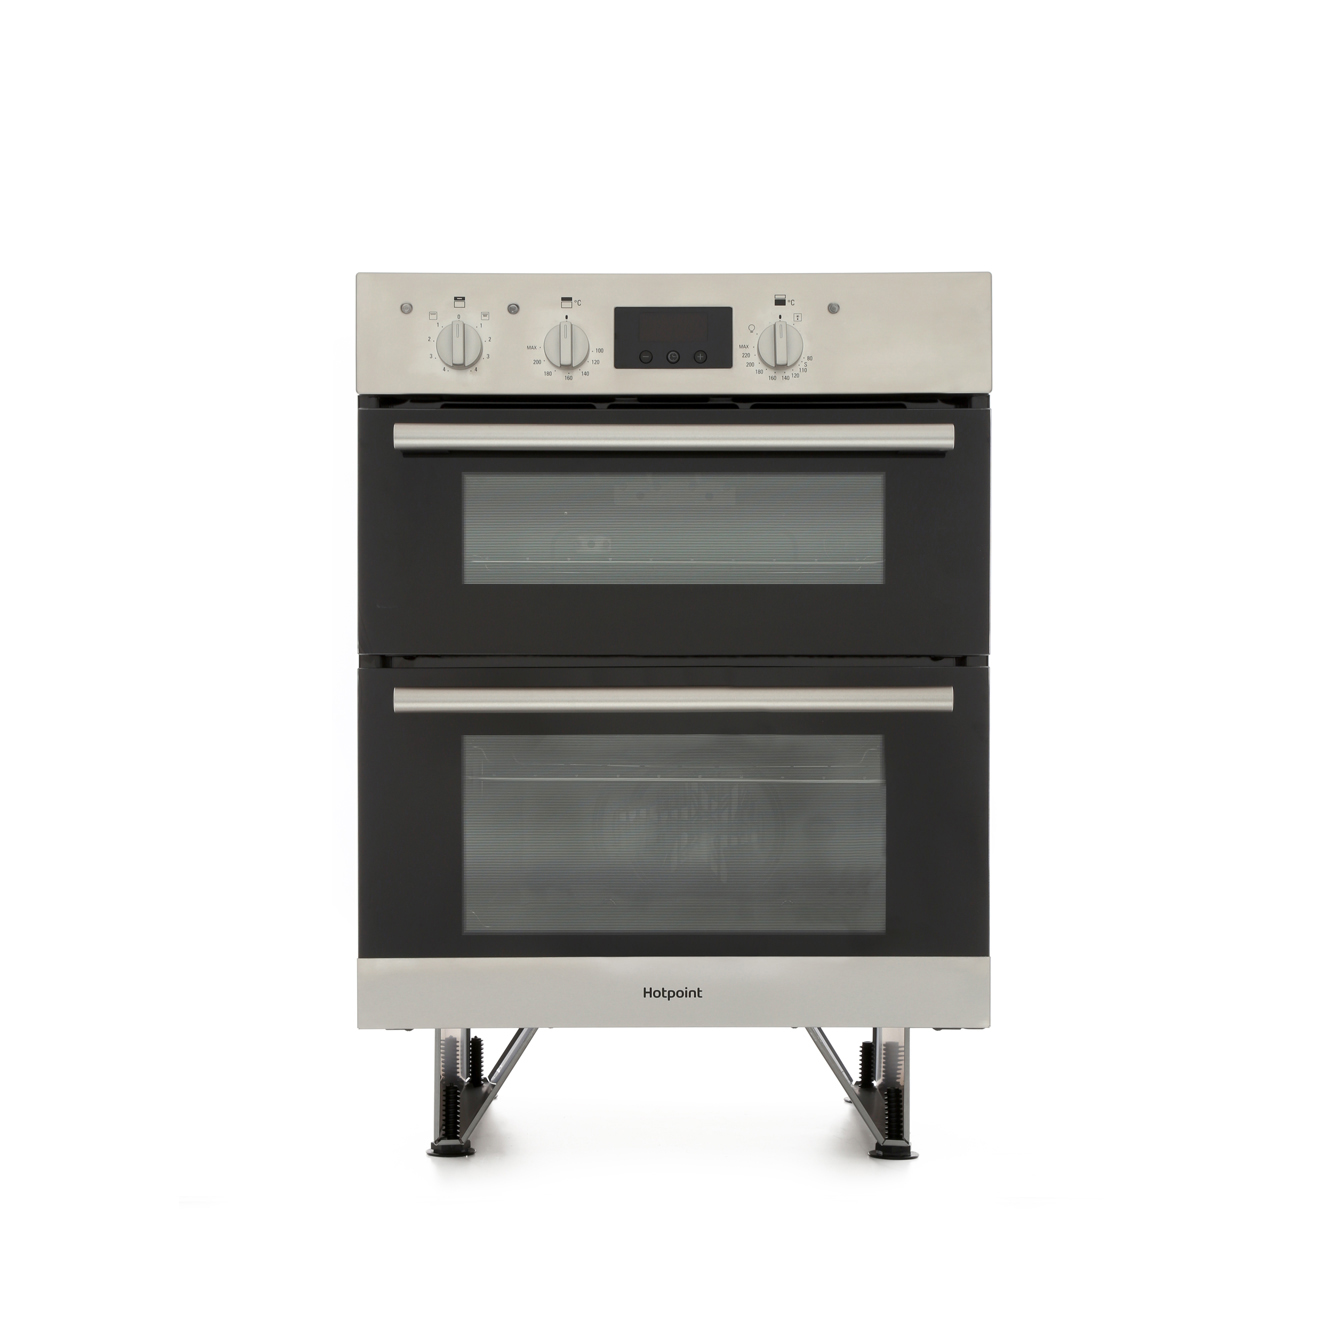 Hotpoint DU2540IX Double Built Under Electric Oven